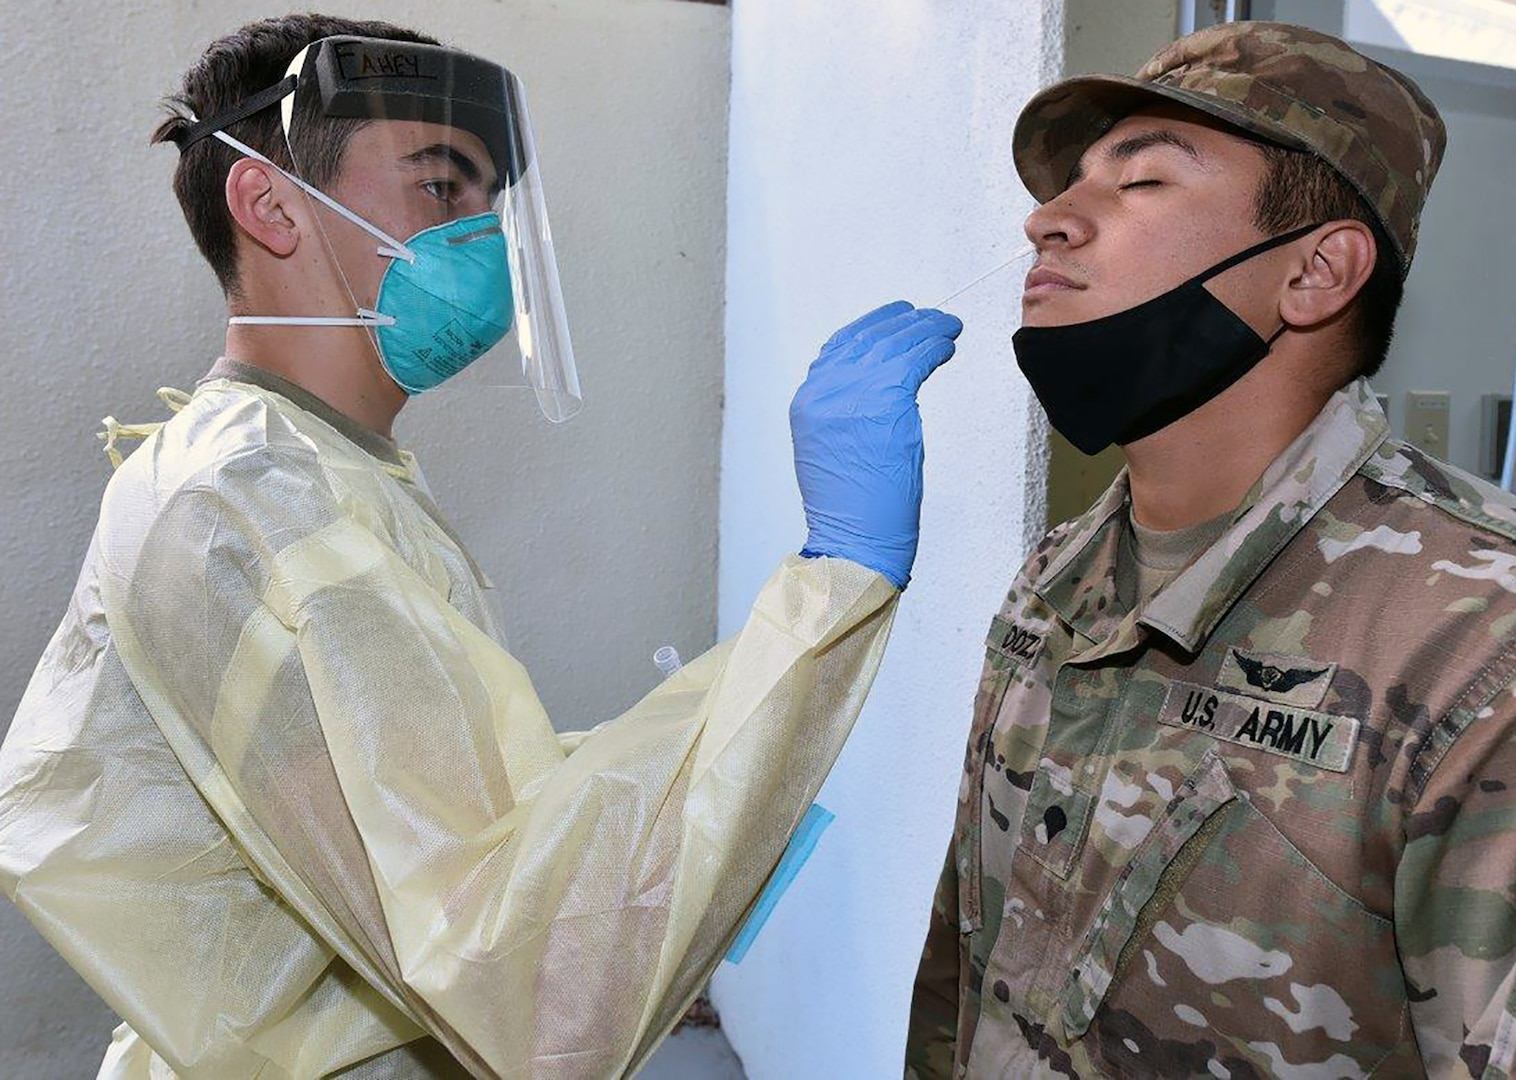 Pvt. Dylan Fahey with Company A, 232nd Medical Battalion, uses a cotton swap to test Spc. Derek Mendoza, assigned to Headquarters Support Company, MEDCoE, for COVID-19.